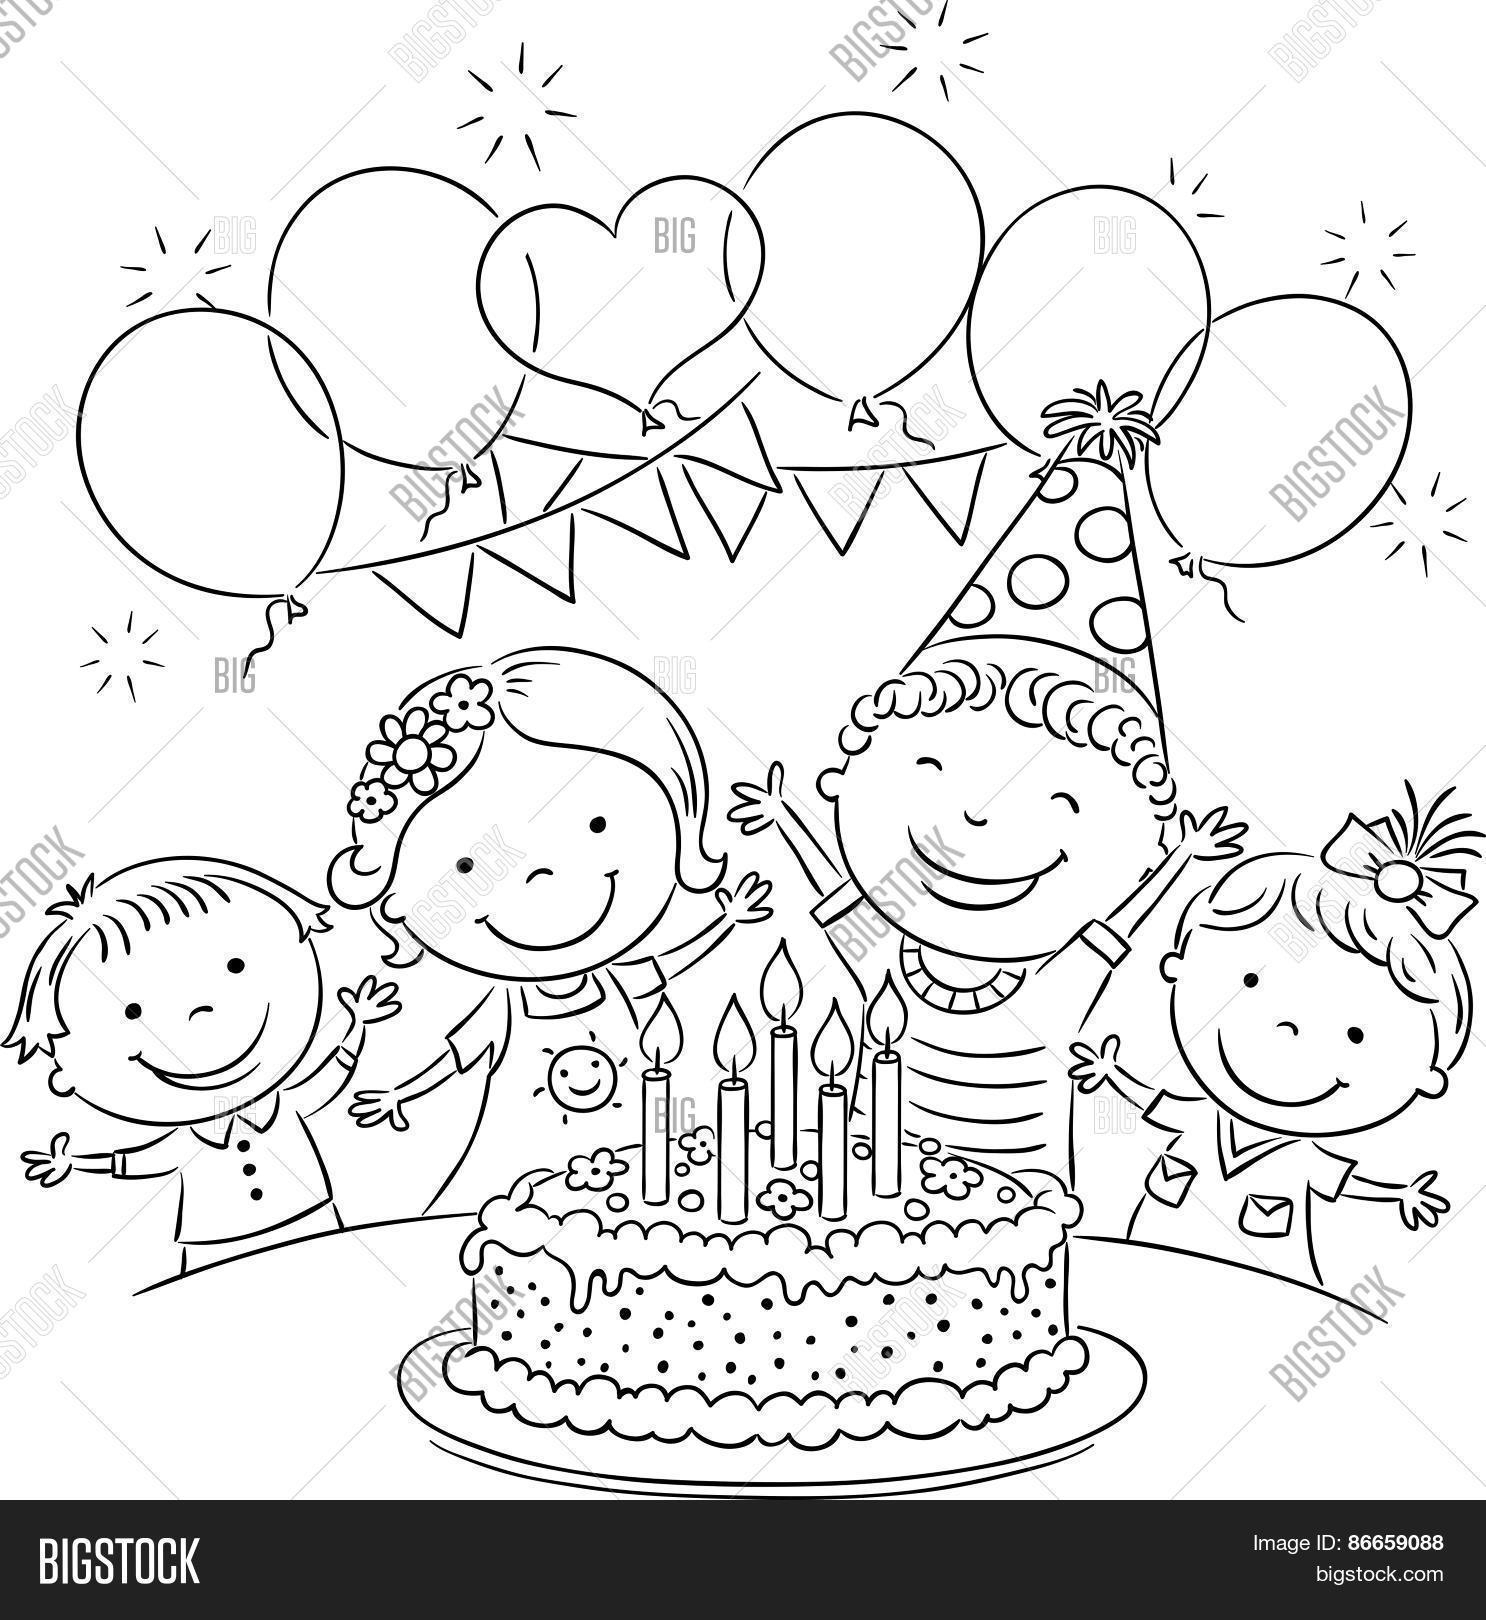 drawing of birthday scene ; birthday-party-scene-for-drawing-kids-birthday-party-outline-stock-vector-stock-photos-bigstock